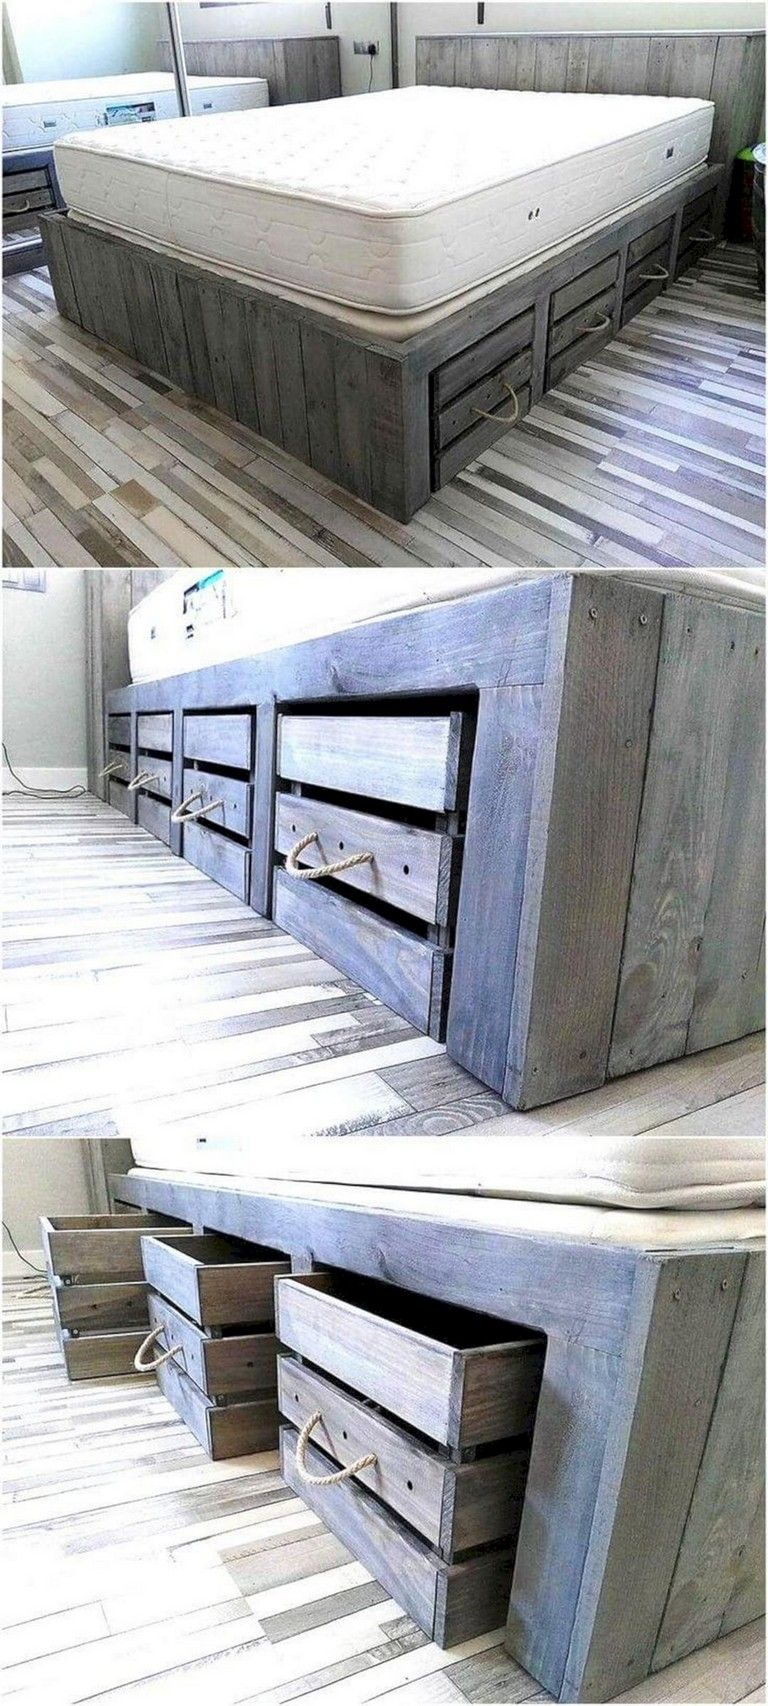 45+ Creative Storage Design For Small Spaces Bedroom Ideas images